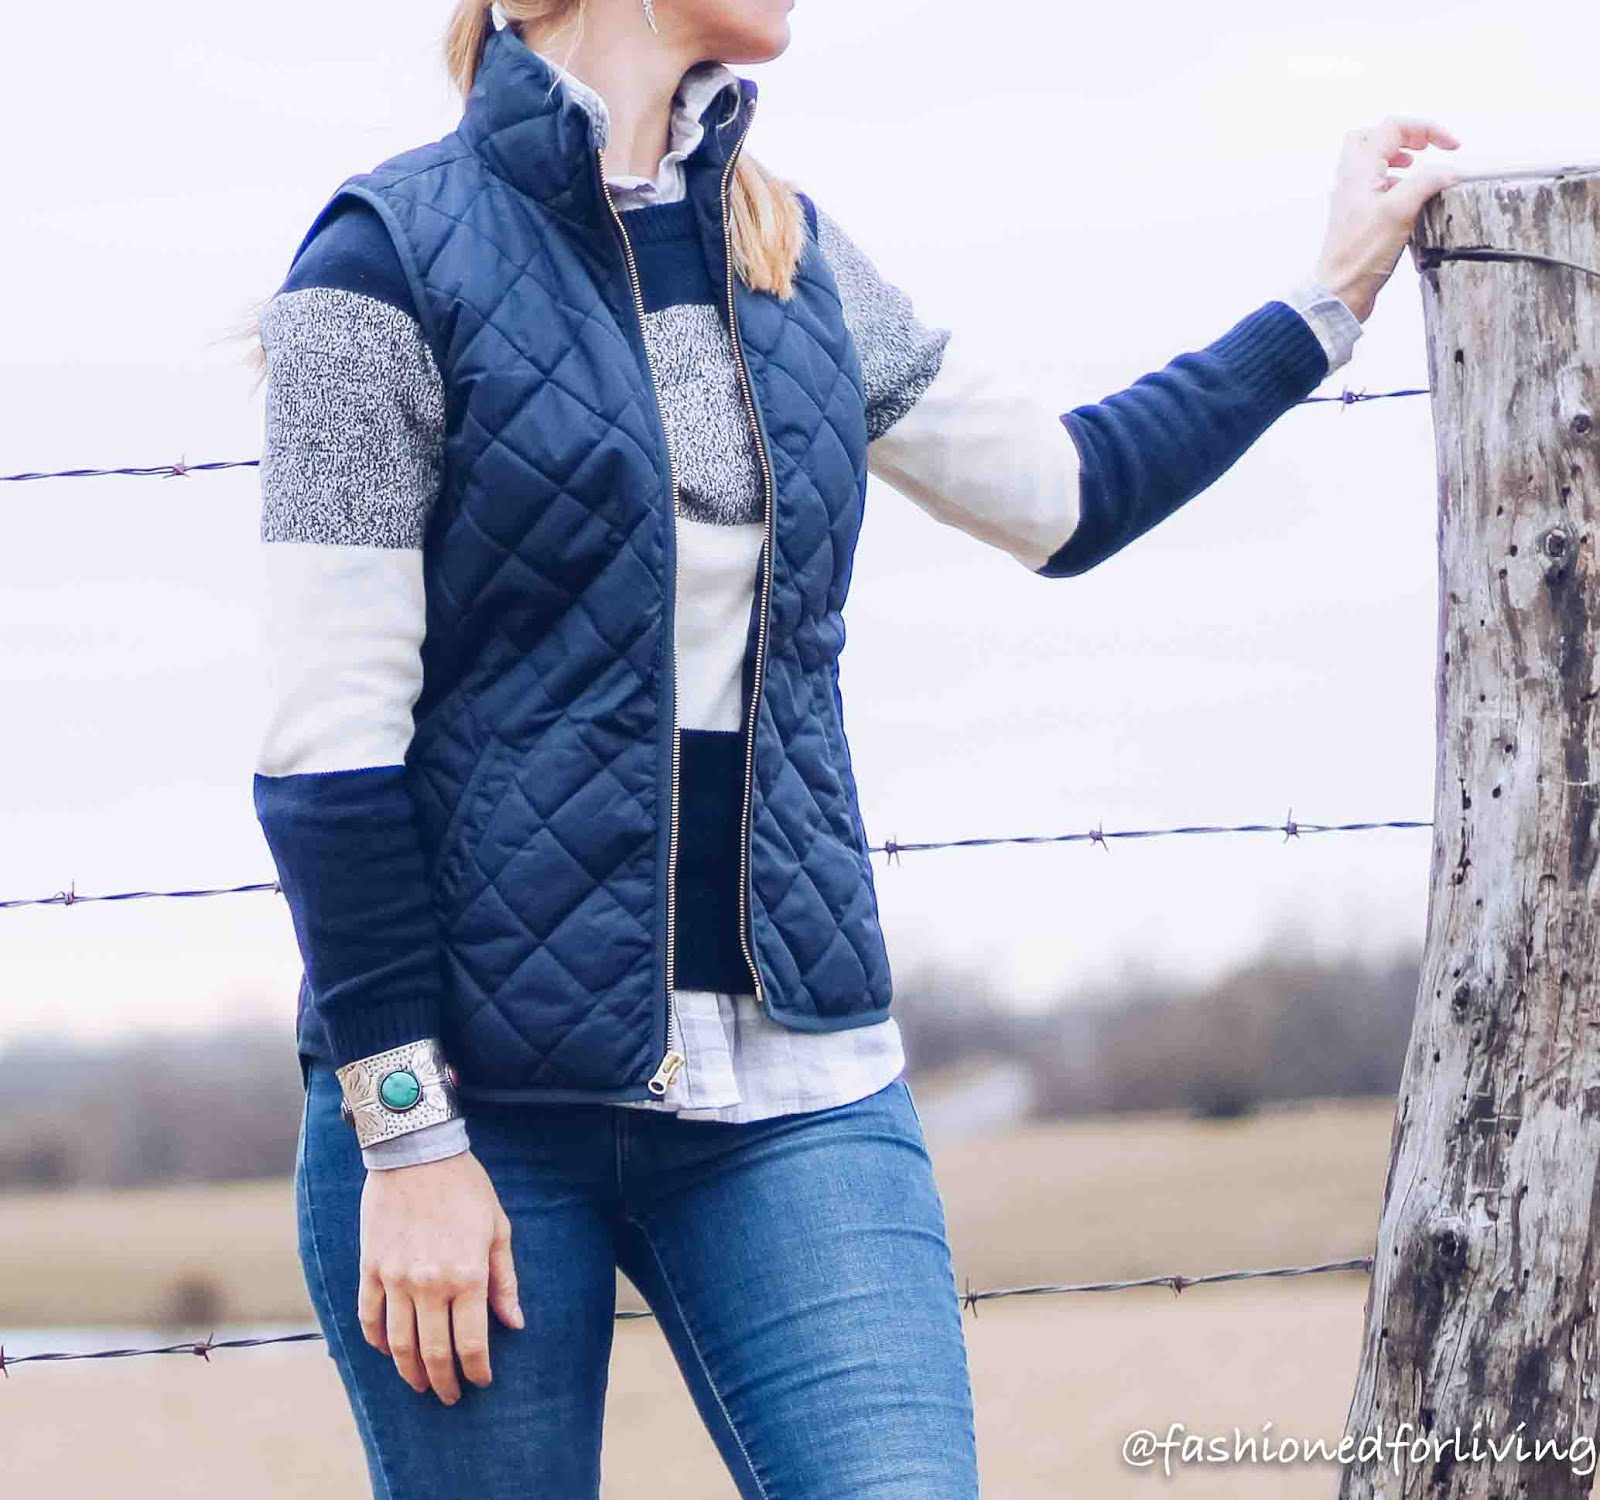 3920bd5775d quilted vest - Old Navy - similar here stripe sweater - Gap Factory  (recent) - similar here flannel - Old Navy - here high waisted skinny jeans  ...